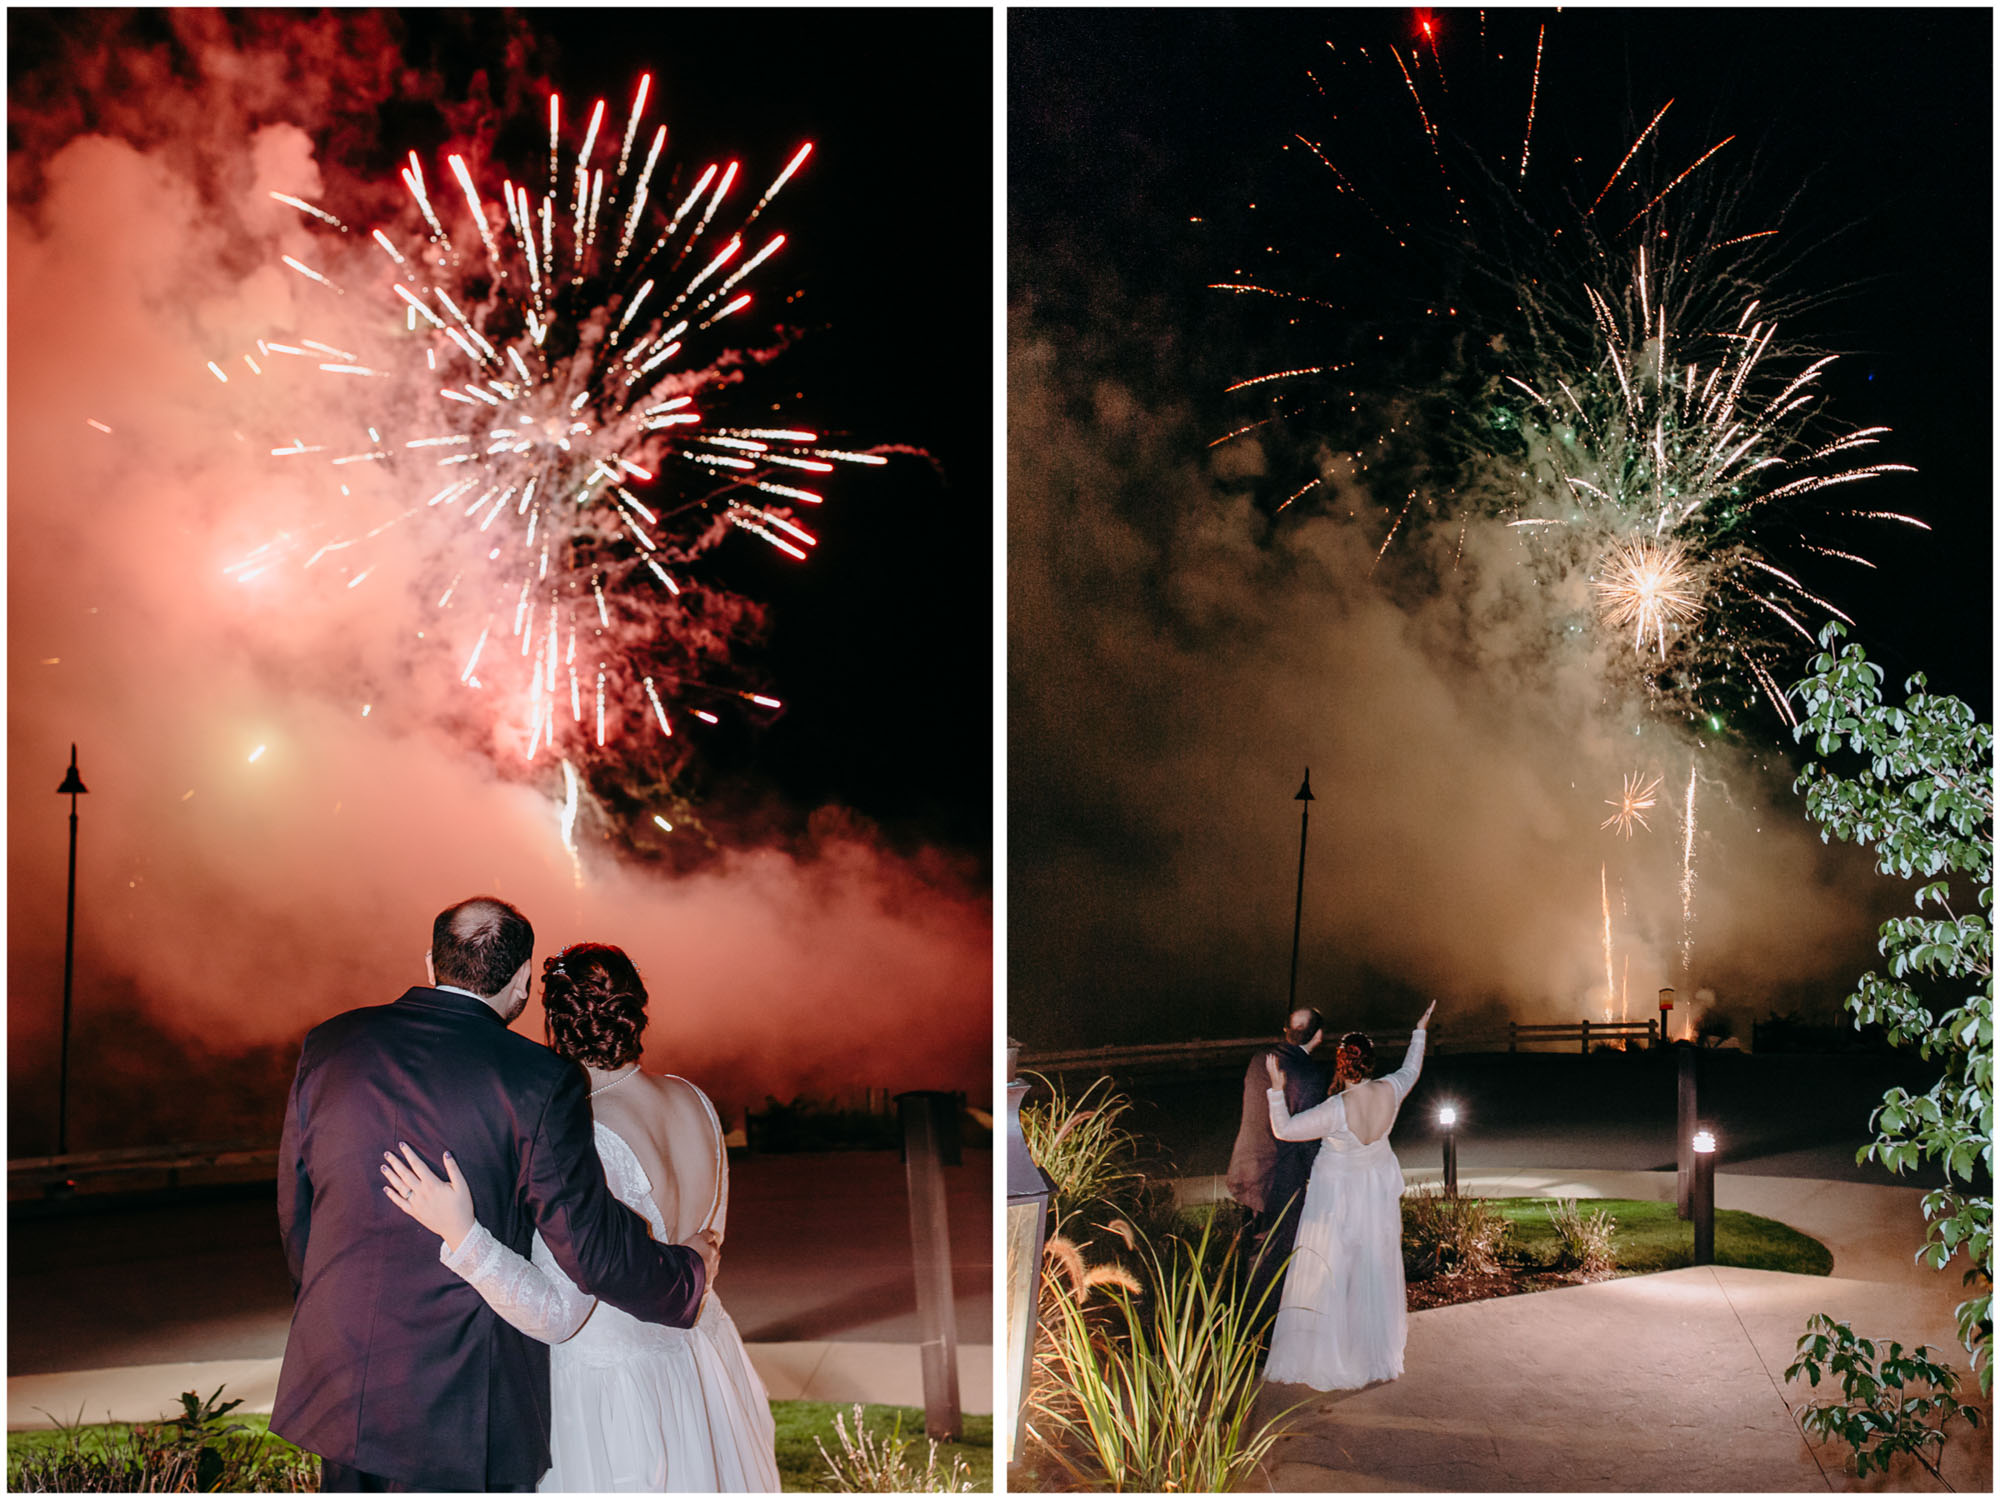 Bride and groom watch fireworks show during reception - by Ashleigh Laureen Photography at LaBelle Winery in Amherst, New Hampshire